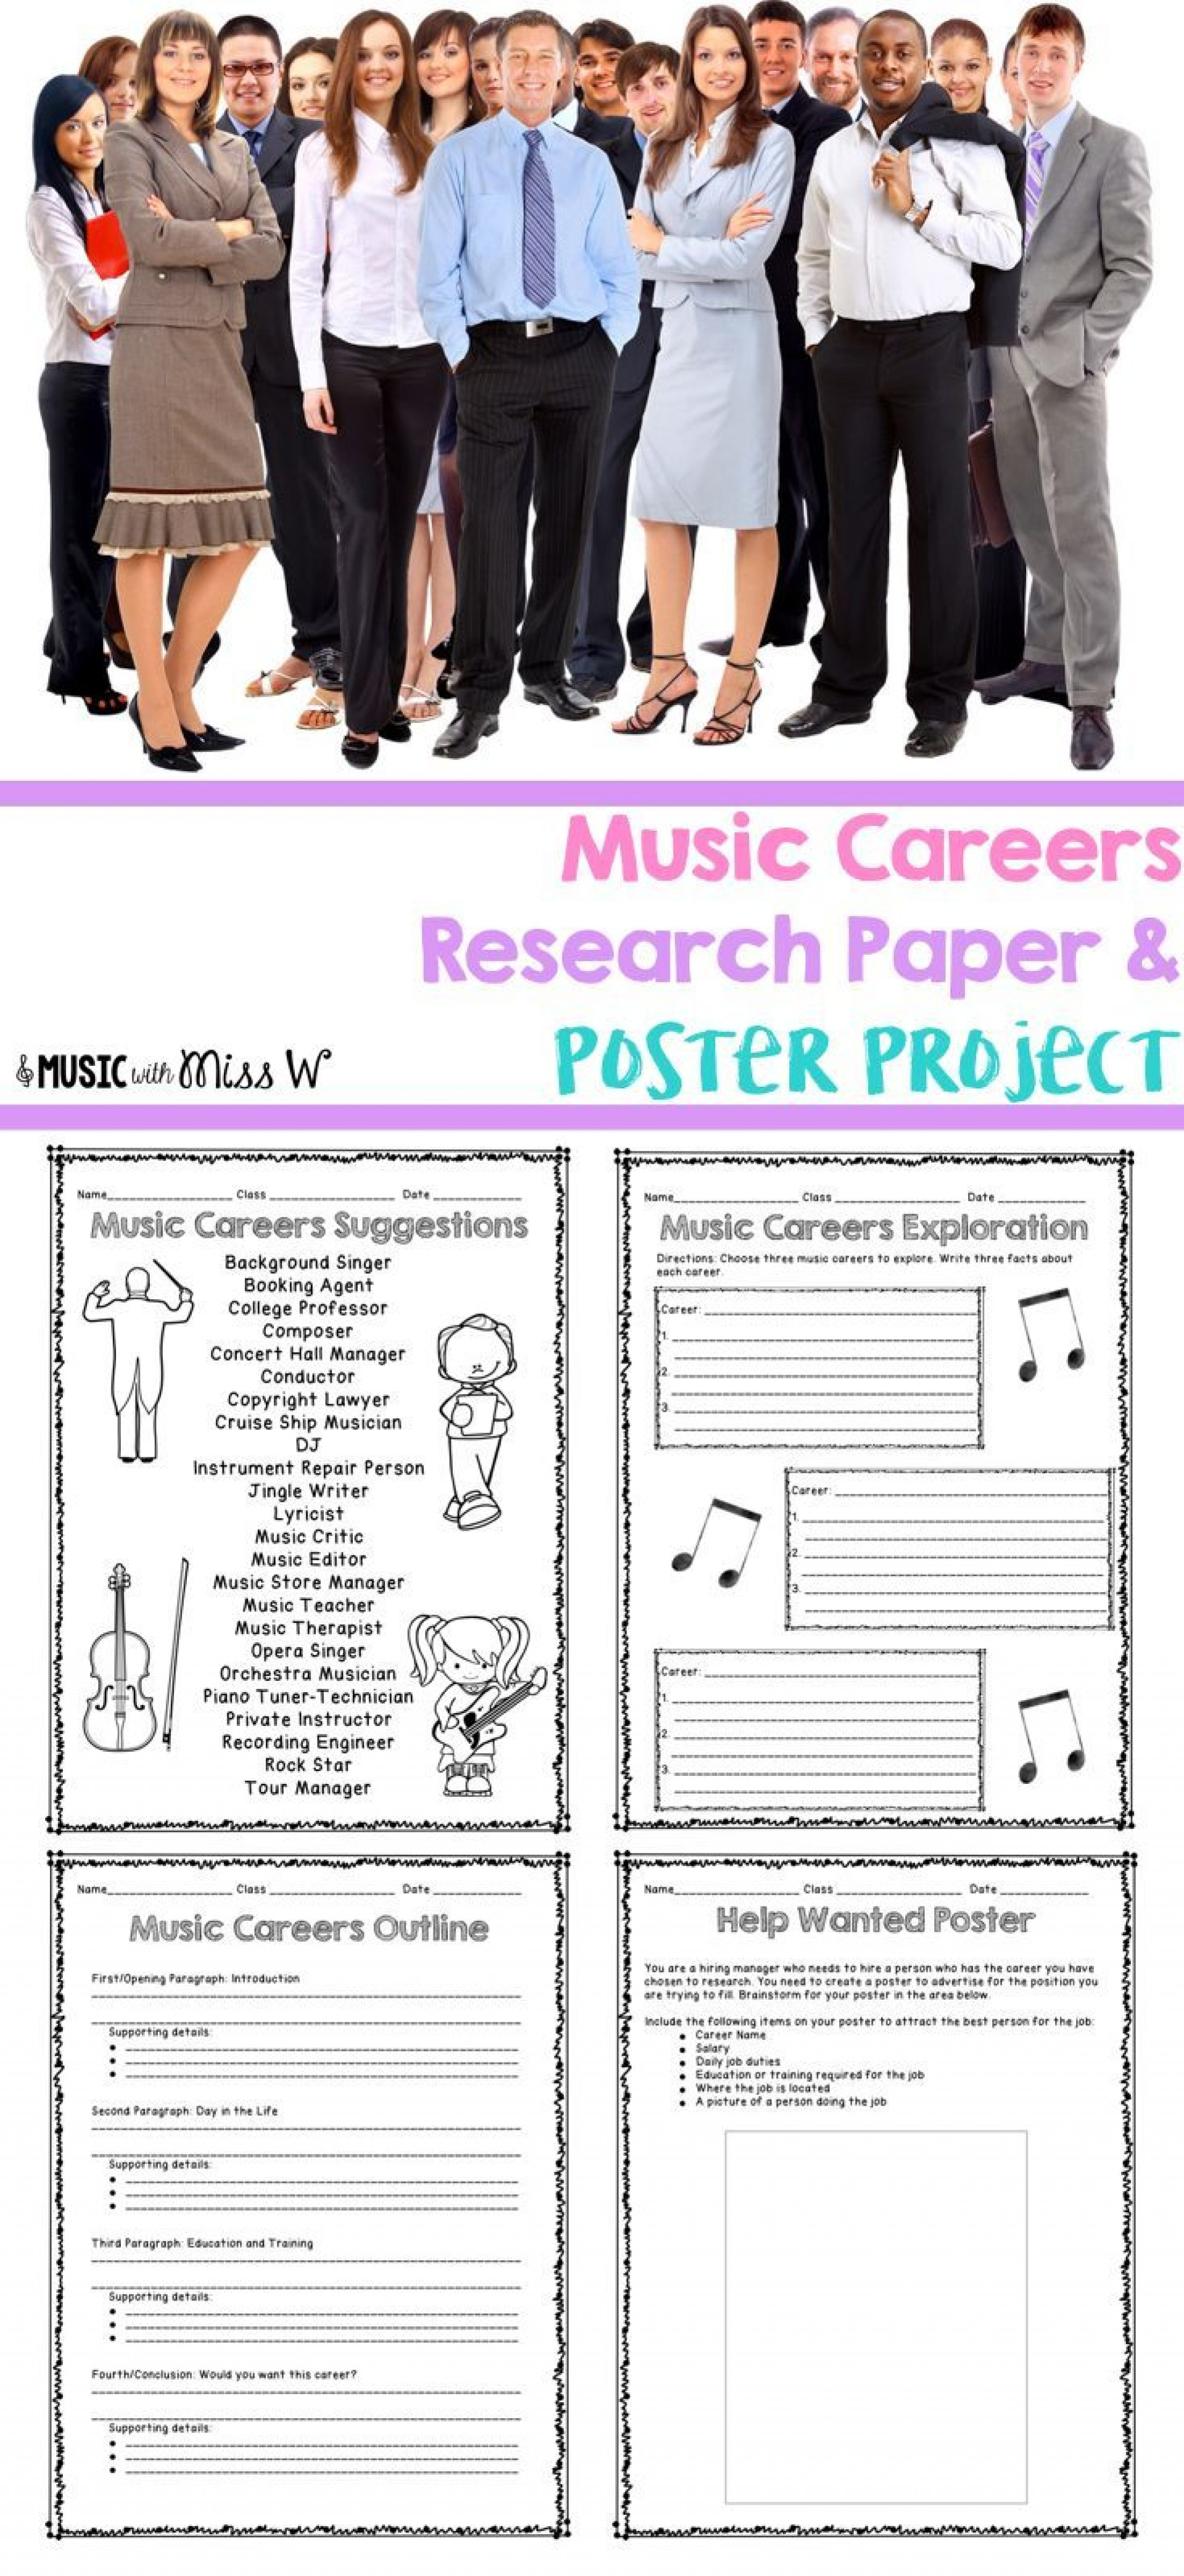 009 Research Paper Career Outline Middle School Dreaded 1920